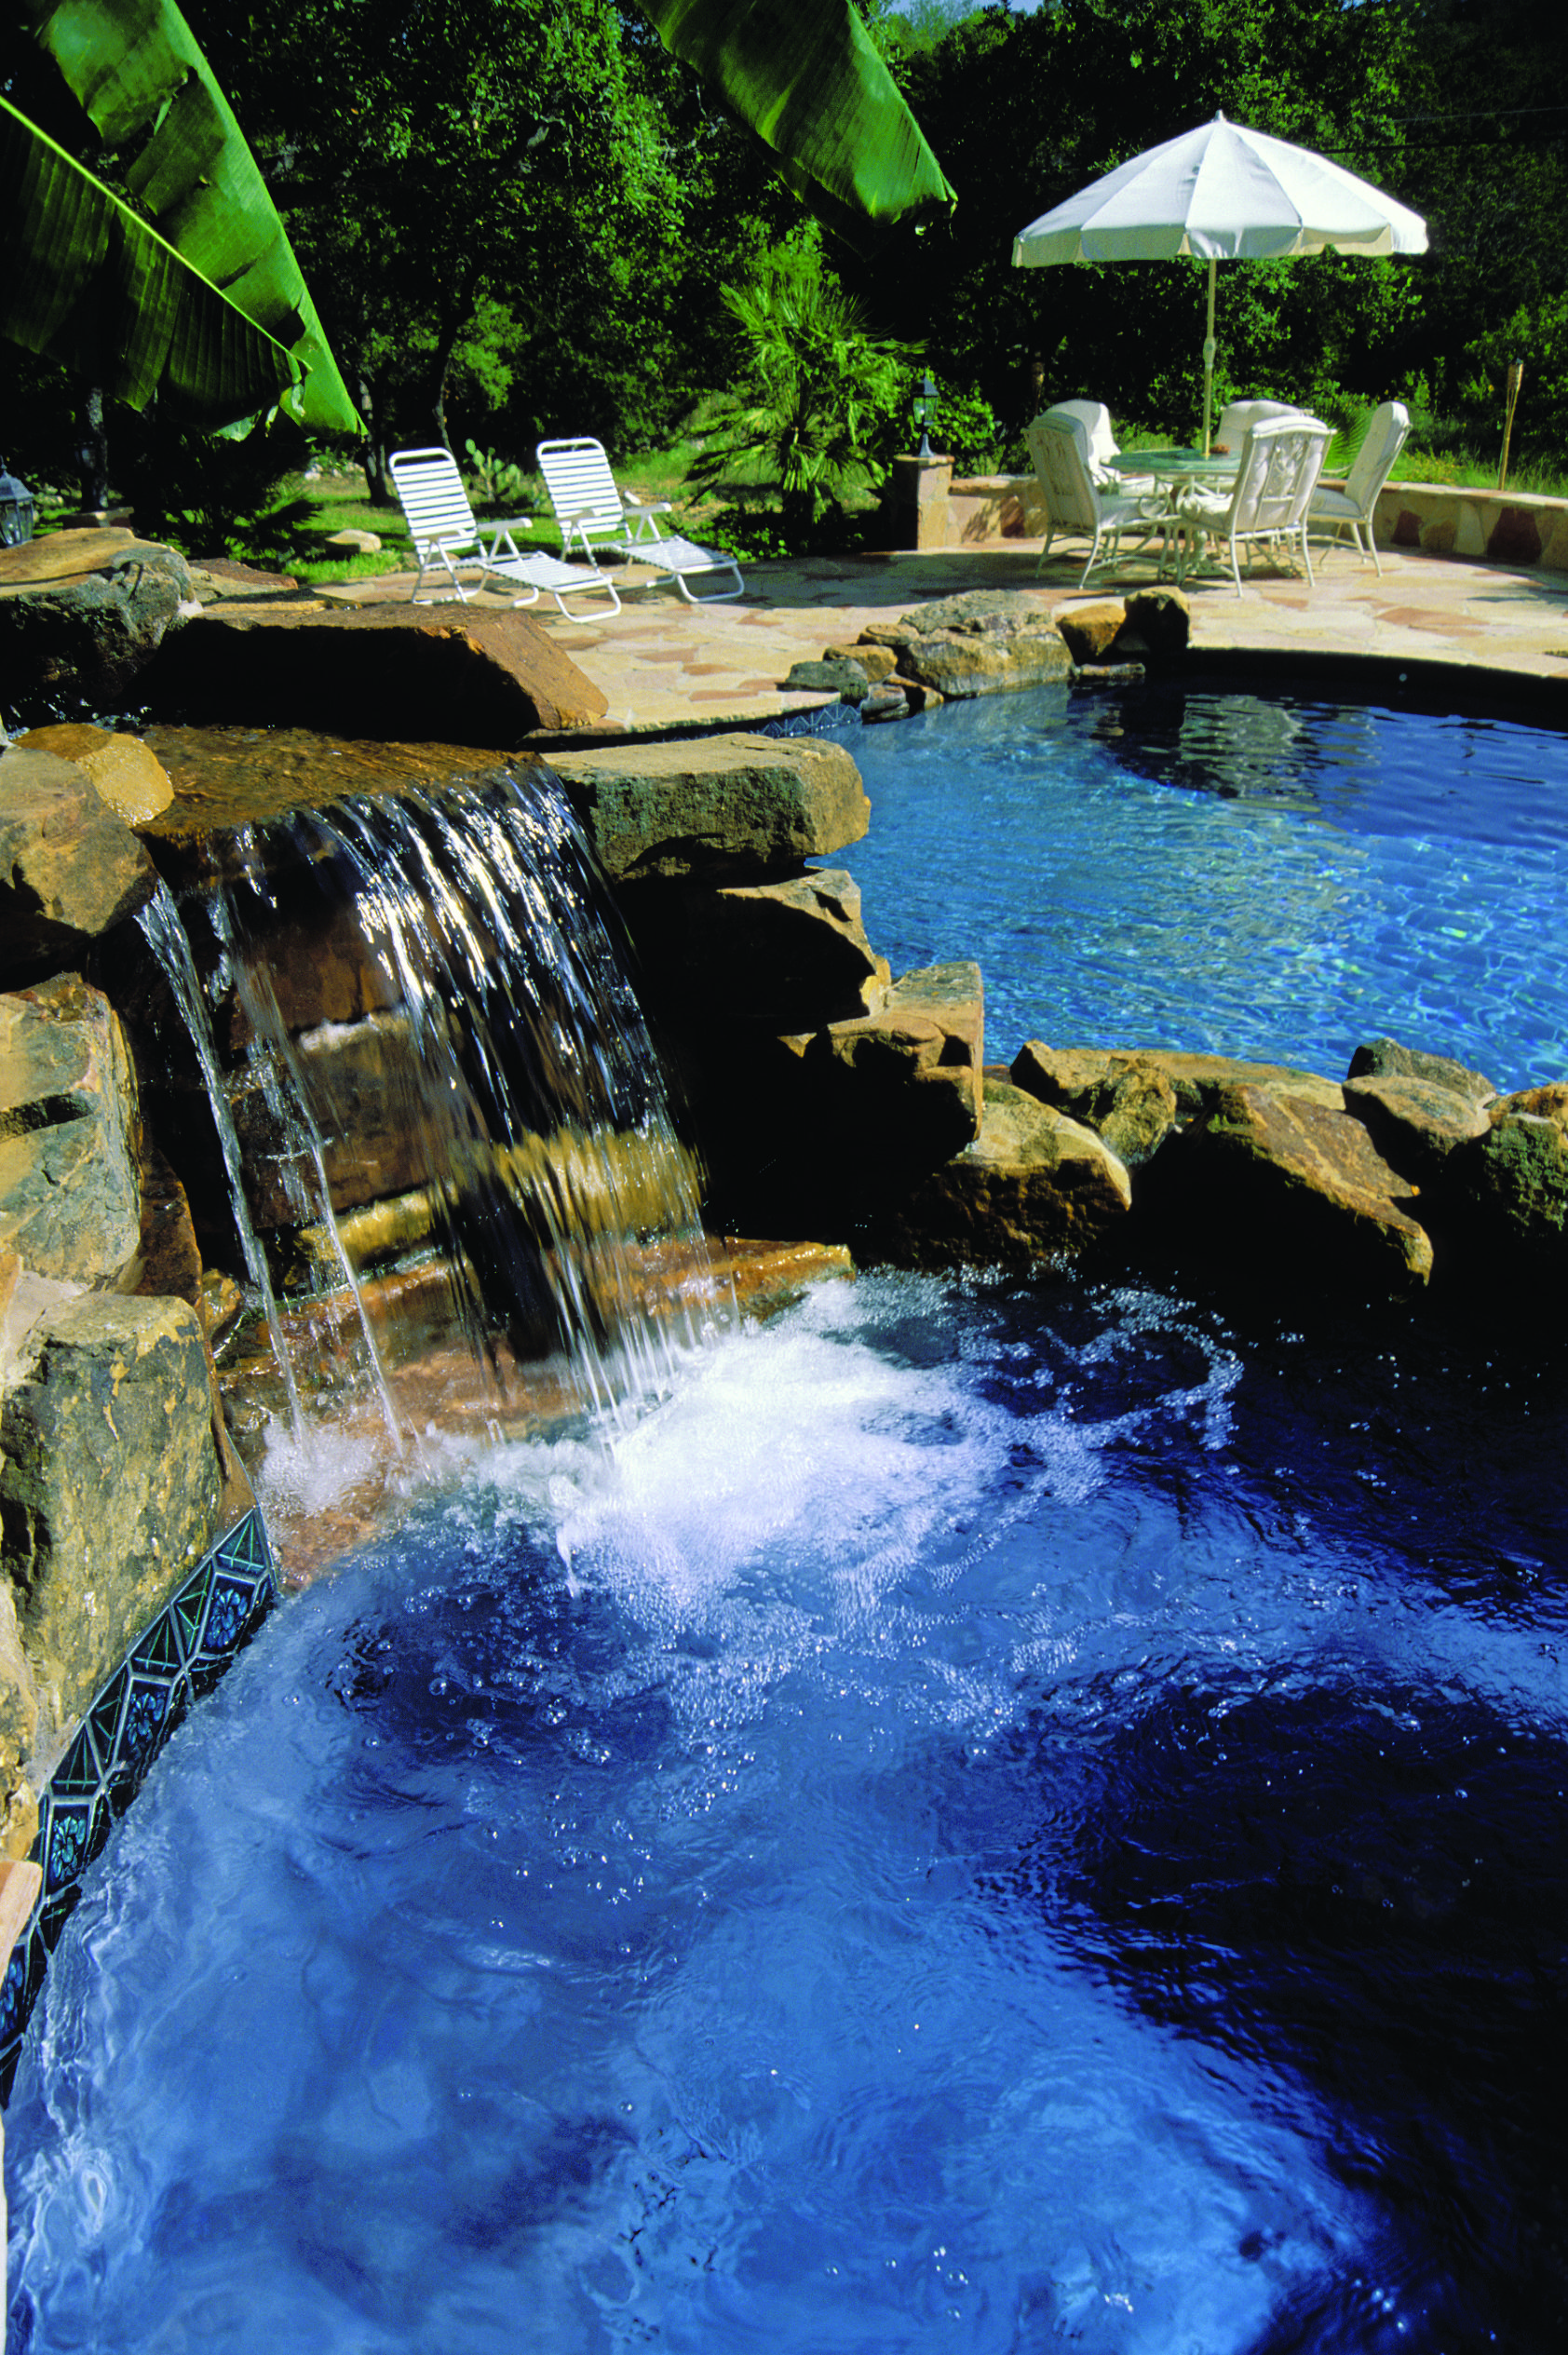 swimming pool with beautiful rock waterfall | Flickr - Photo Sharing!